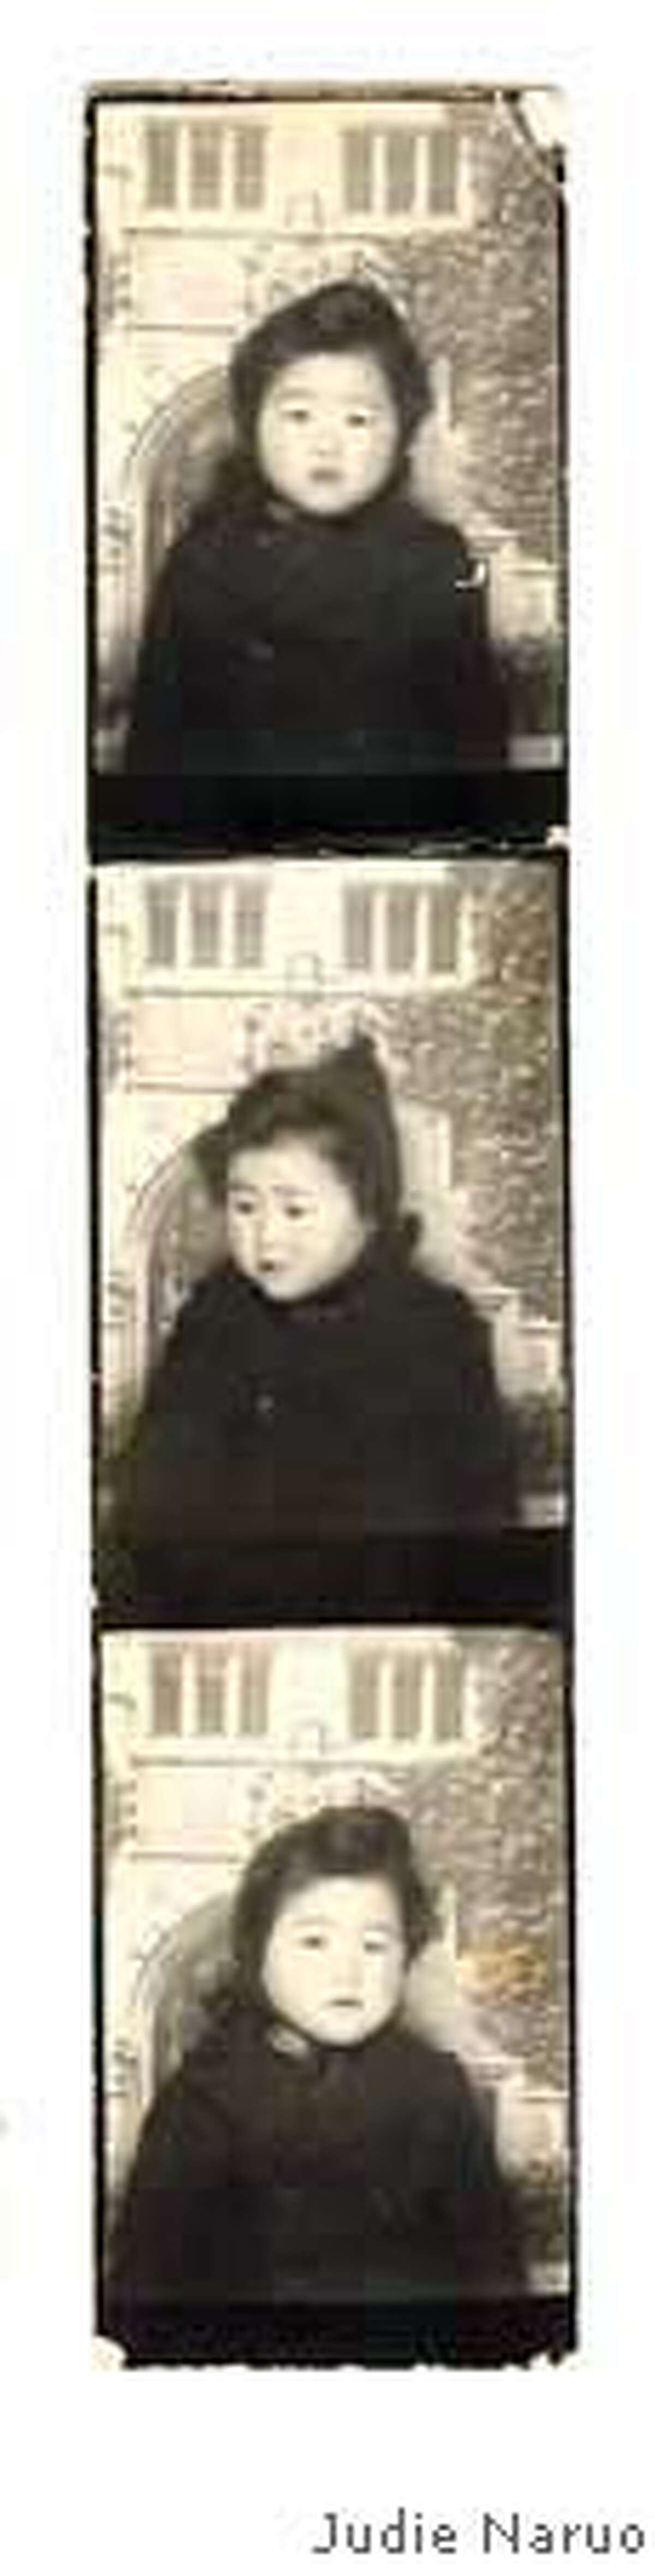 Judie Naruo, of Tanforan race track, as a baby. Photo courtesy of Judie Naruo